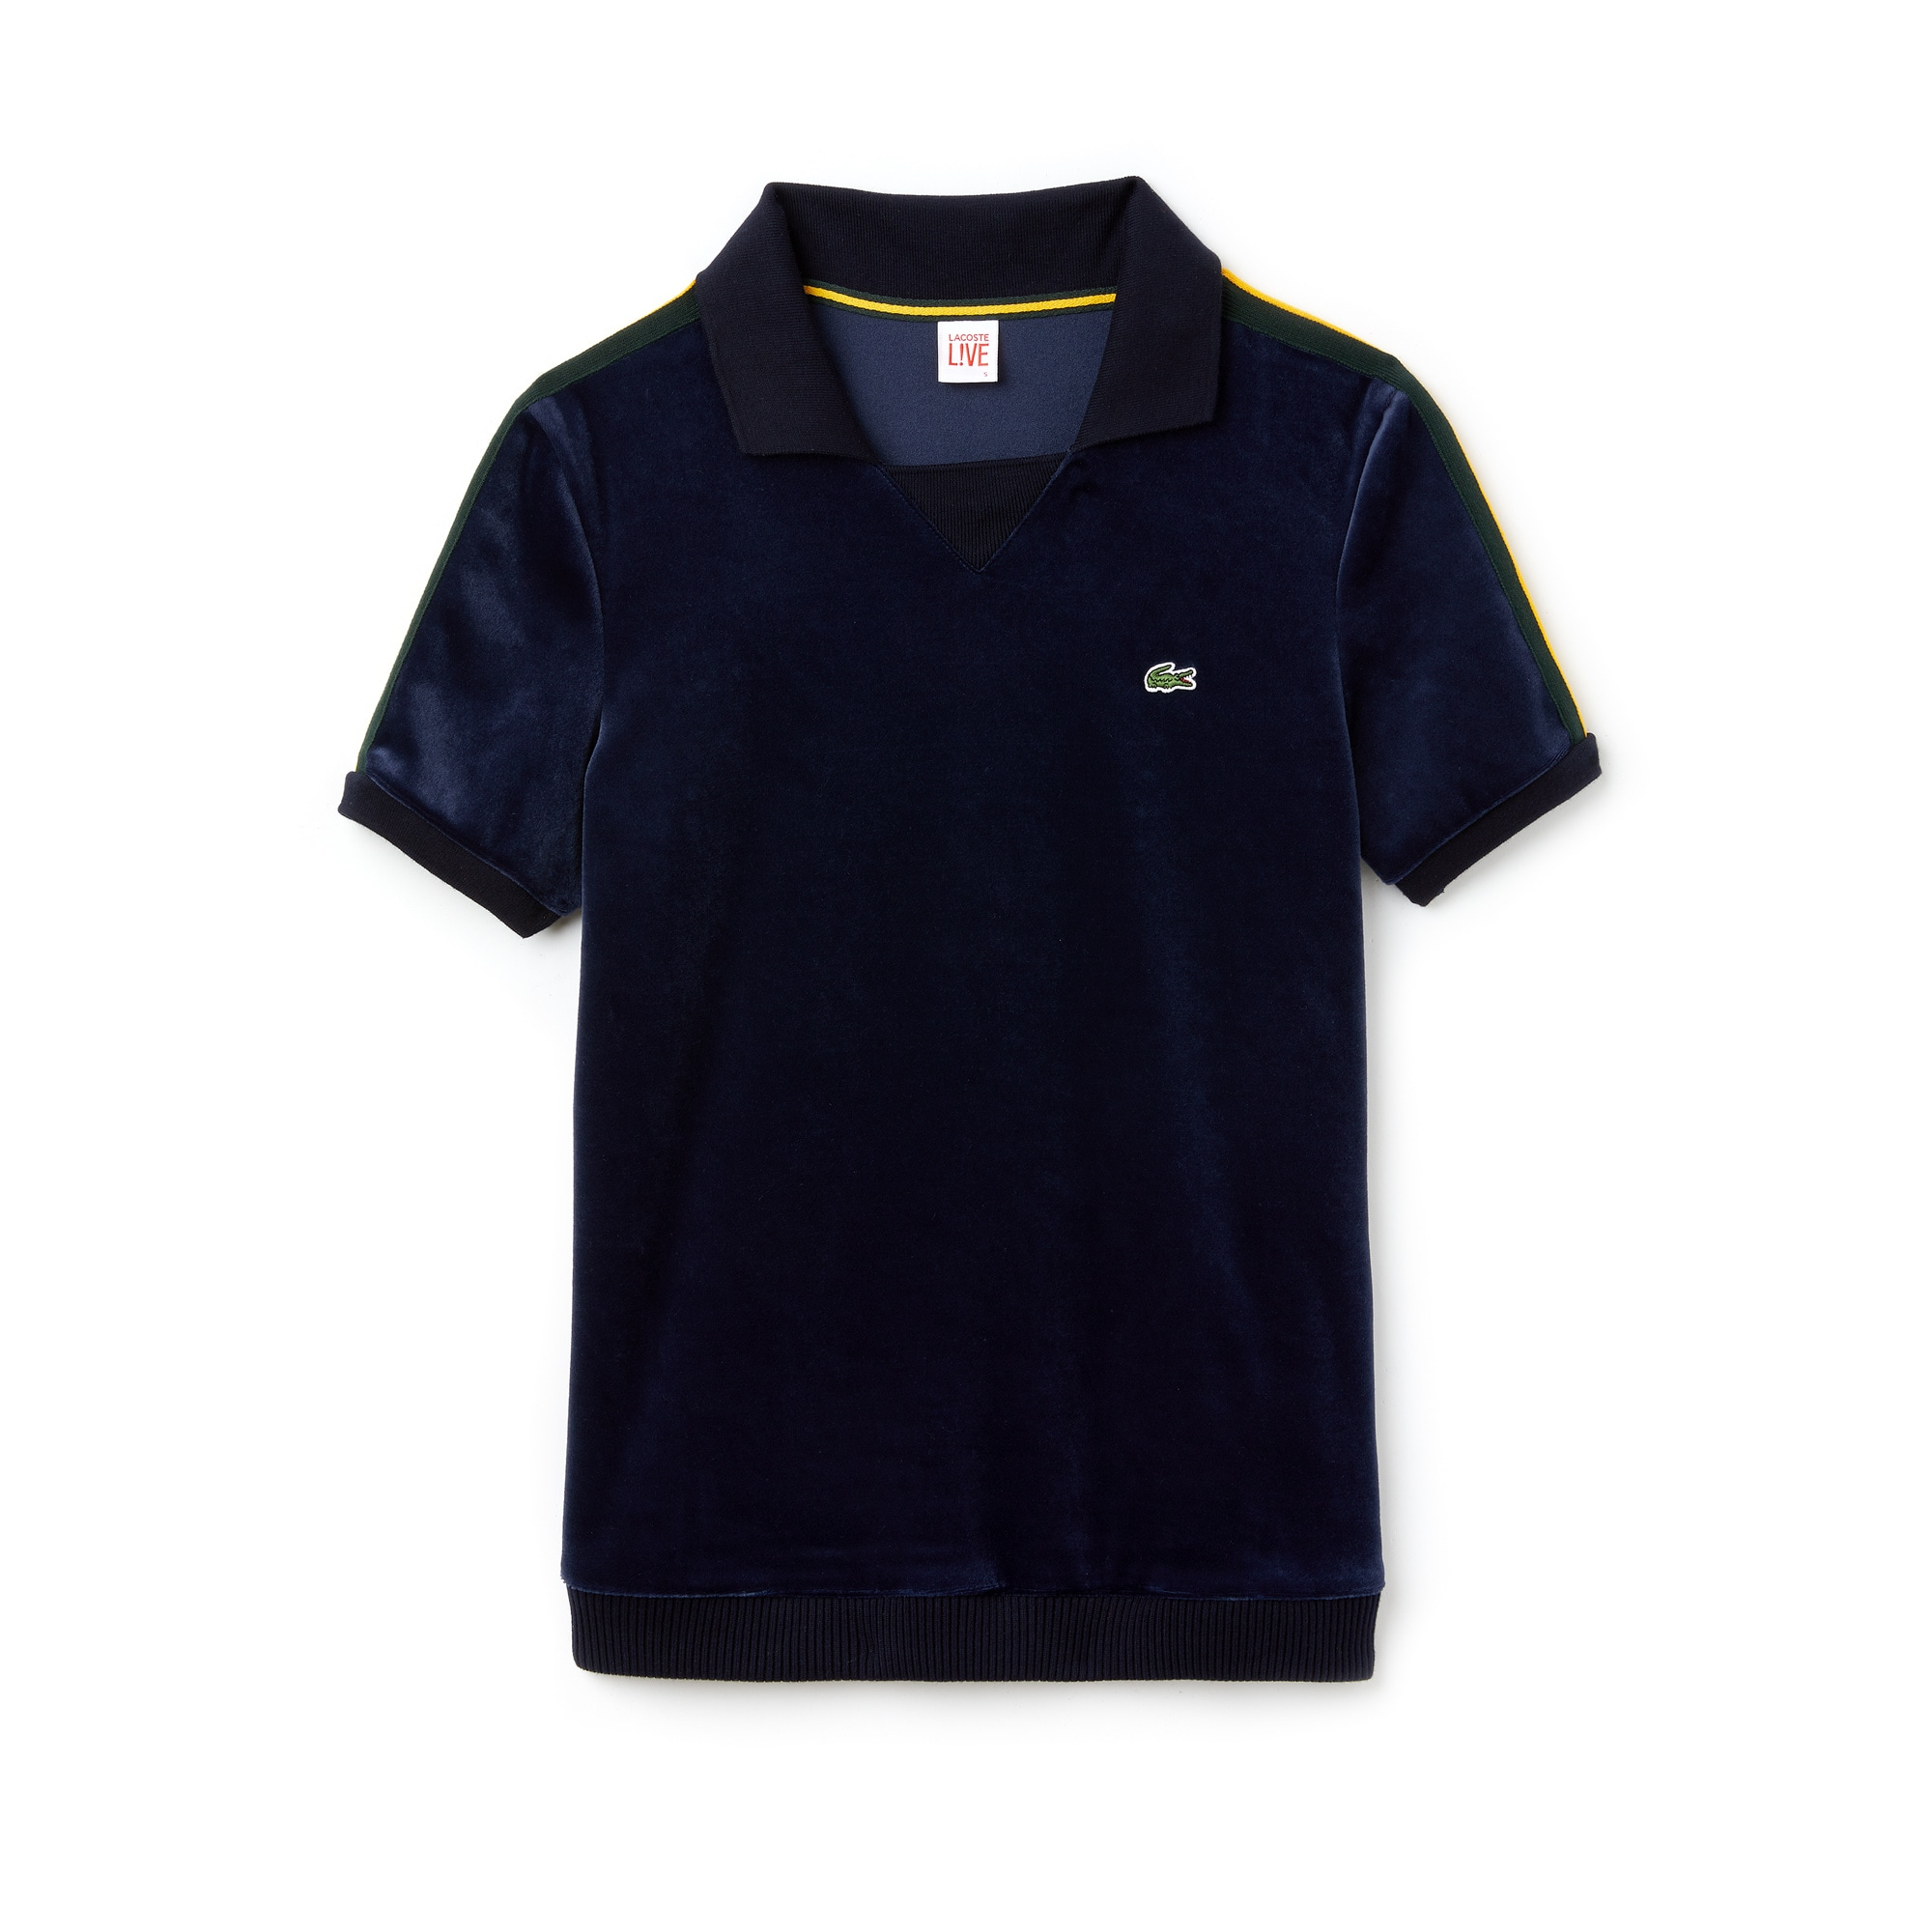 Lacoste LIVE-polo dames boxy fit velours met contrasterende stroken